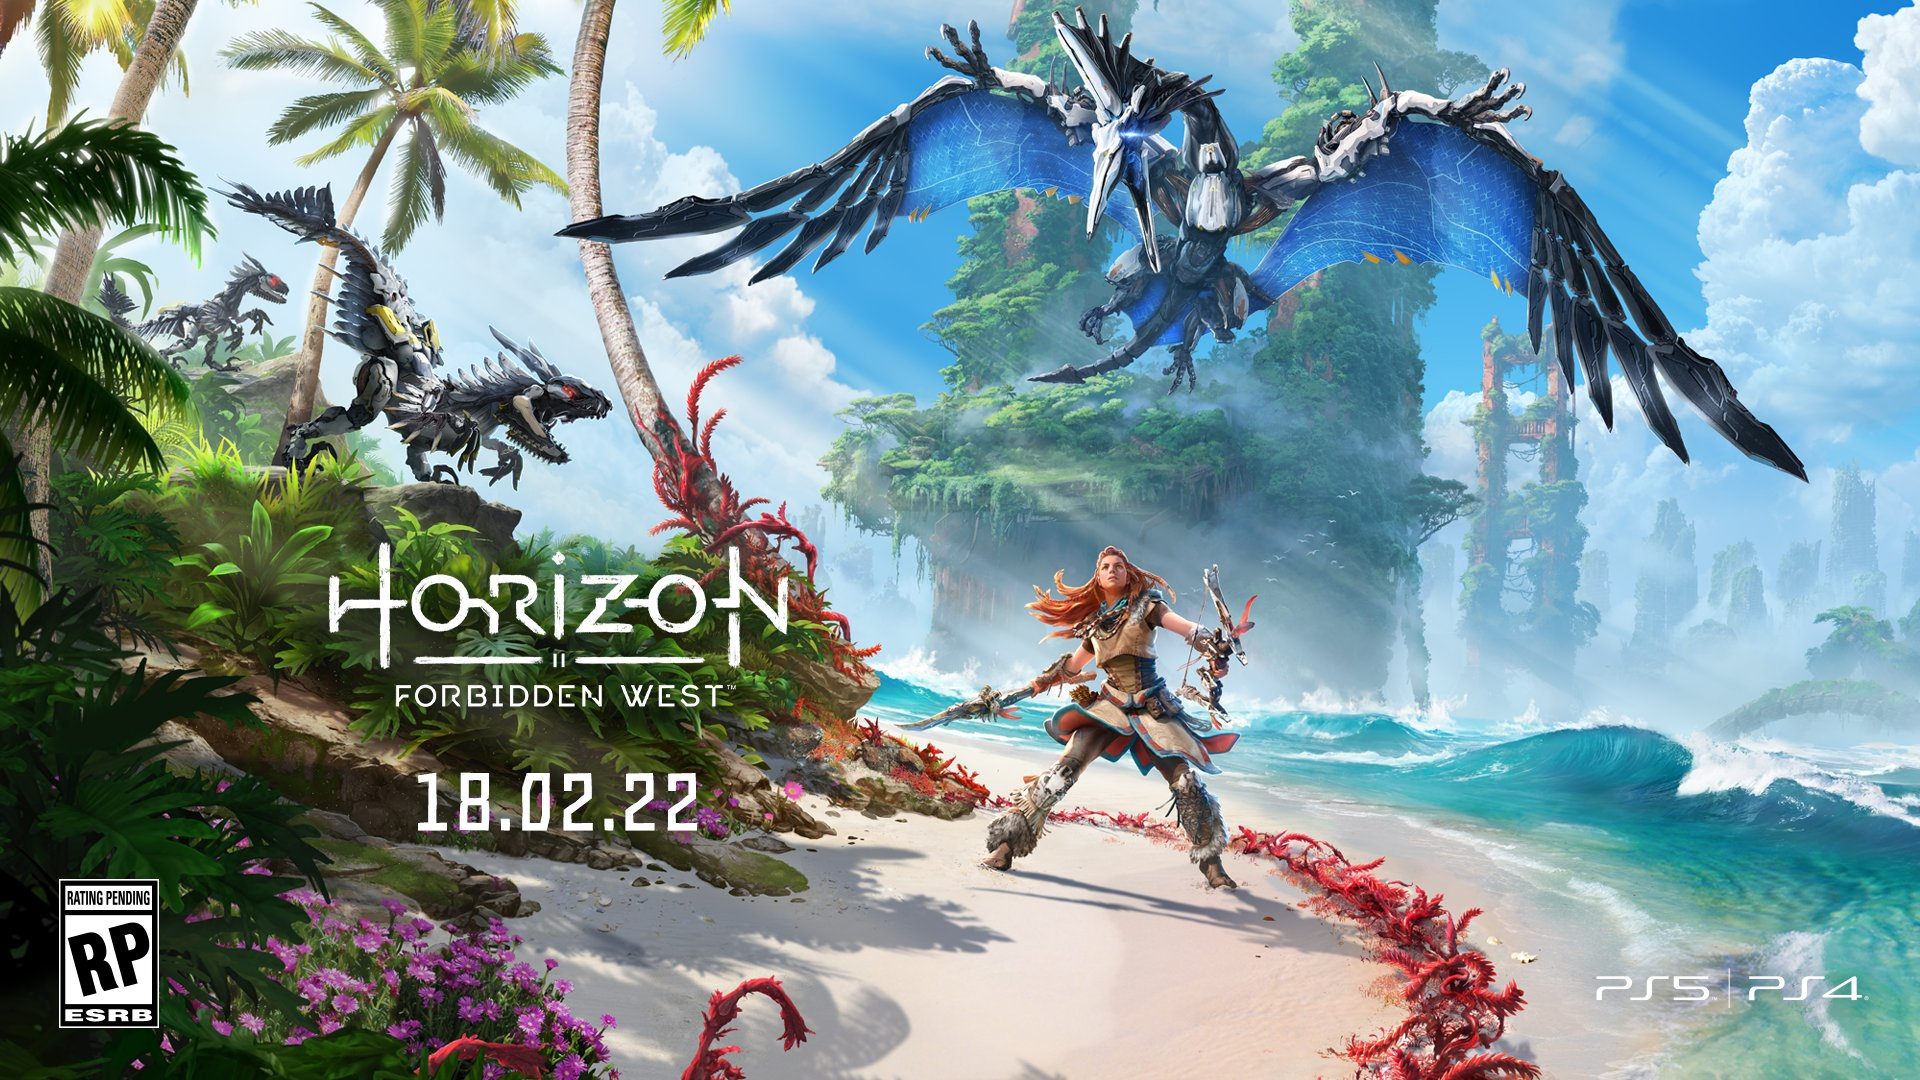 The key art for Horizon Forbidden West, with the release date 18 February 2022.